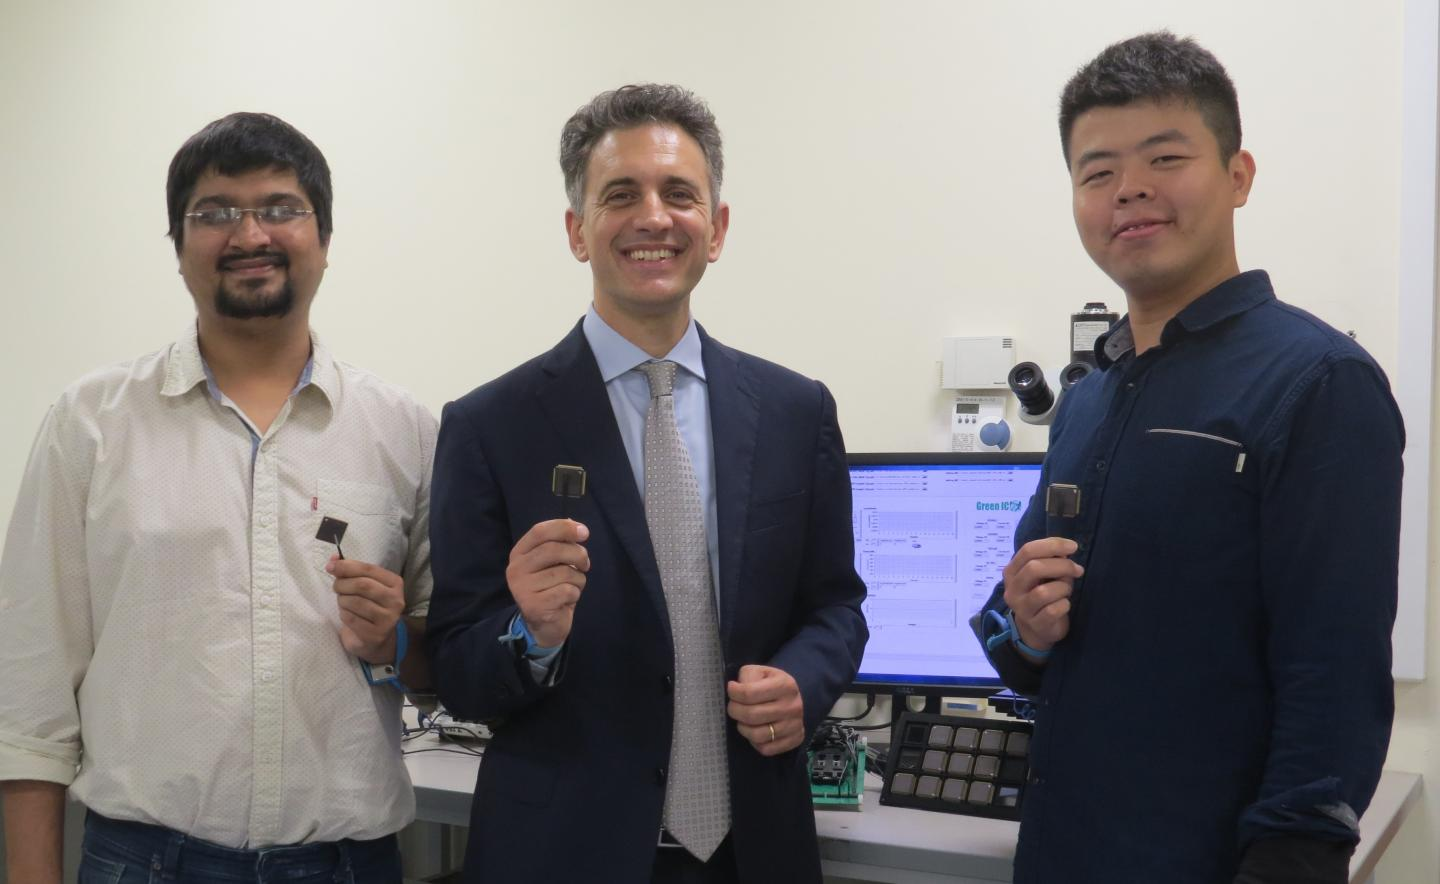 NUS Engineers Invent Smart Microchip That Can Self-Start And Operate When Battery Runs Out